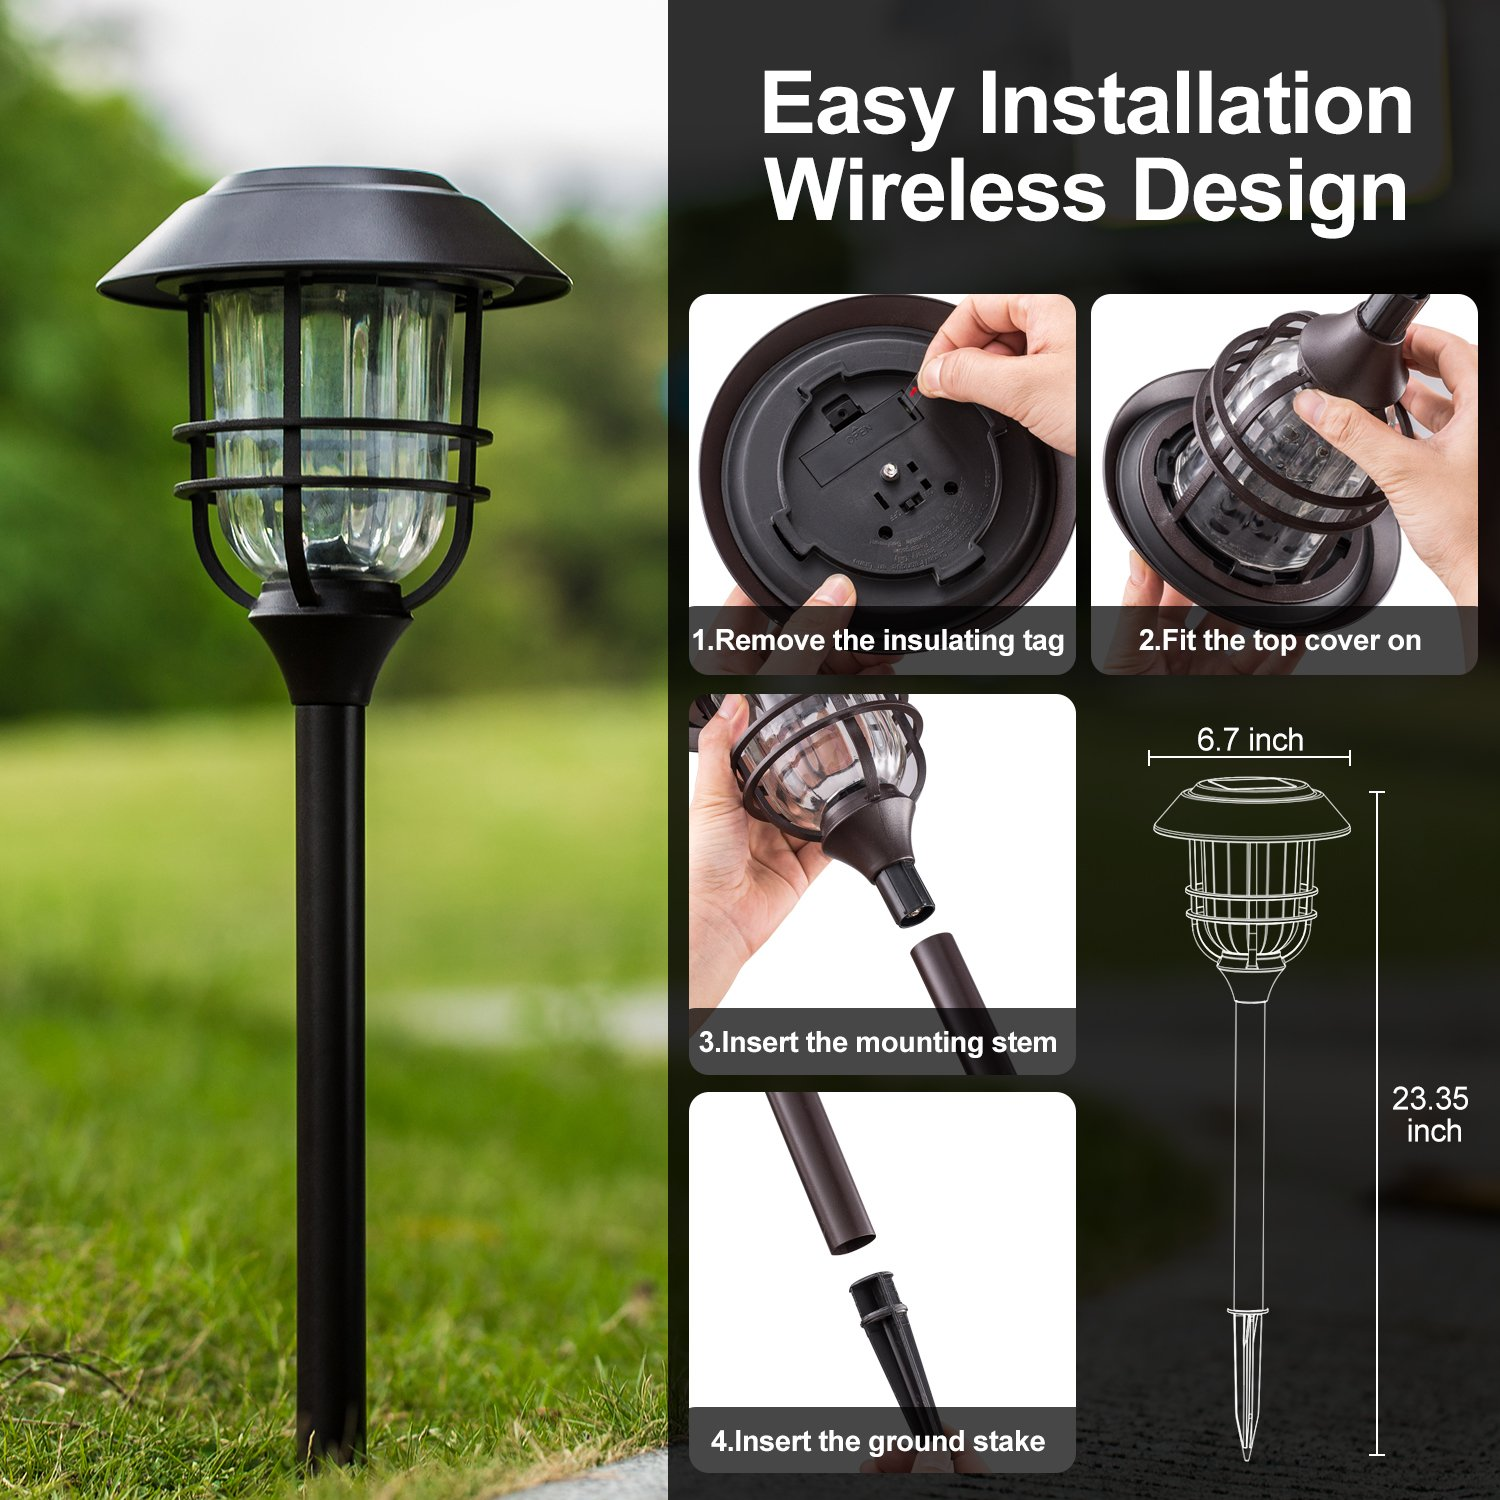 Solar Lights Outdoor Pathway - 4 Pack Bright Glass Solar Powered LED Garden Path Landscape Lighting Bronze Powder Coated Die Casting Aluminum Patio Path Lights Heavy-Duty for All Weather (Bronze) by Sunwind (Image #6)